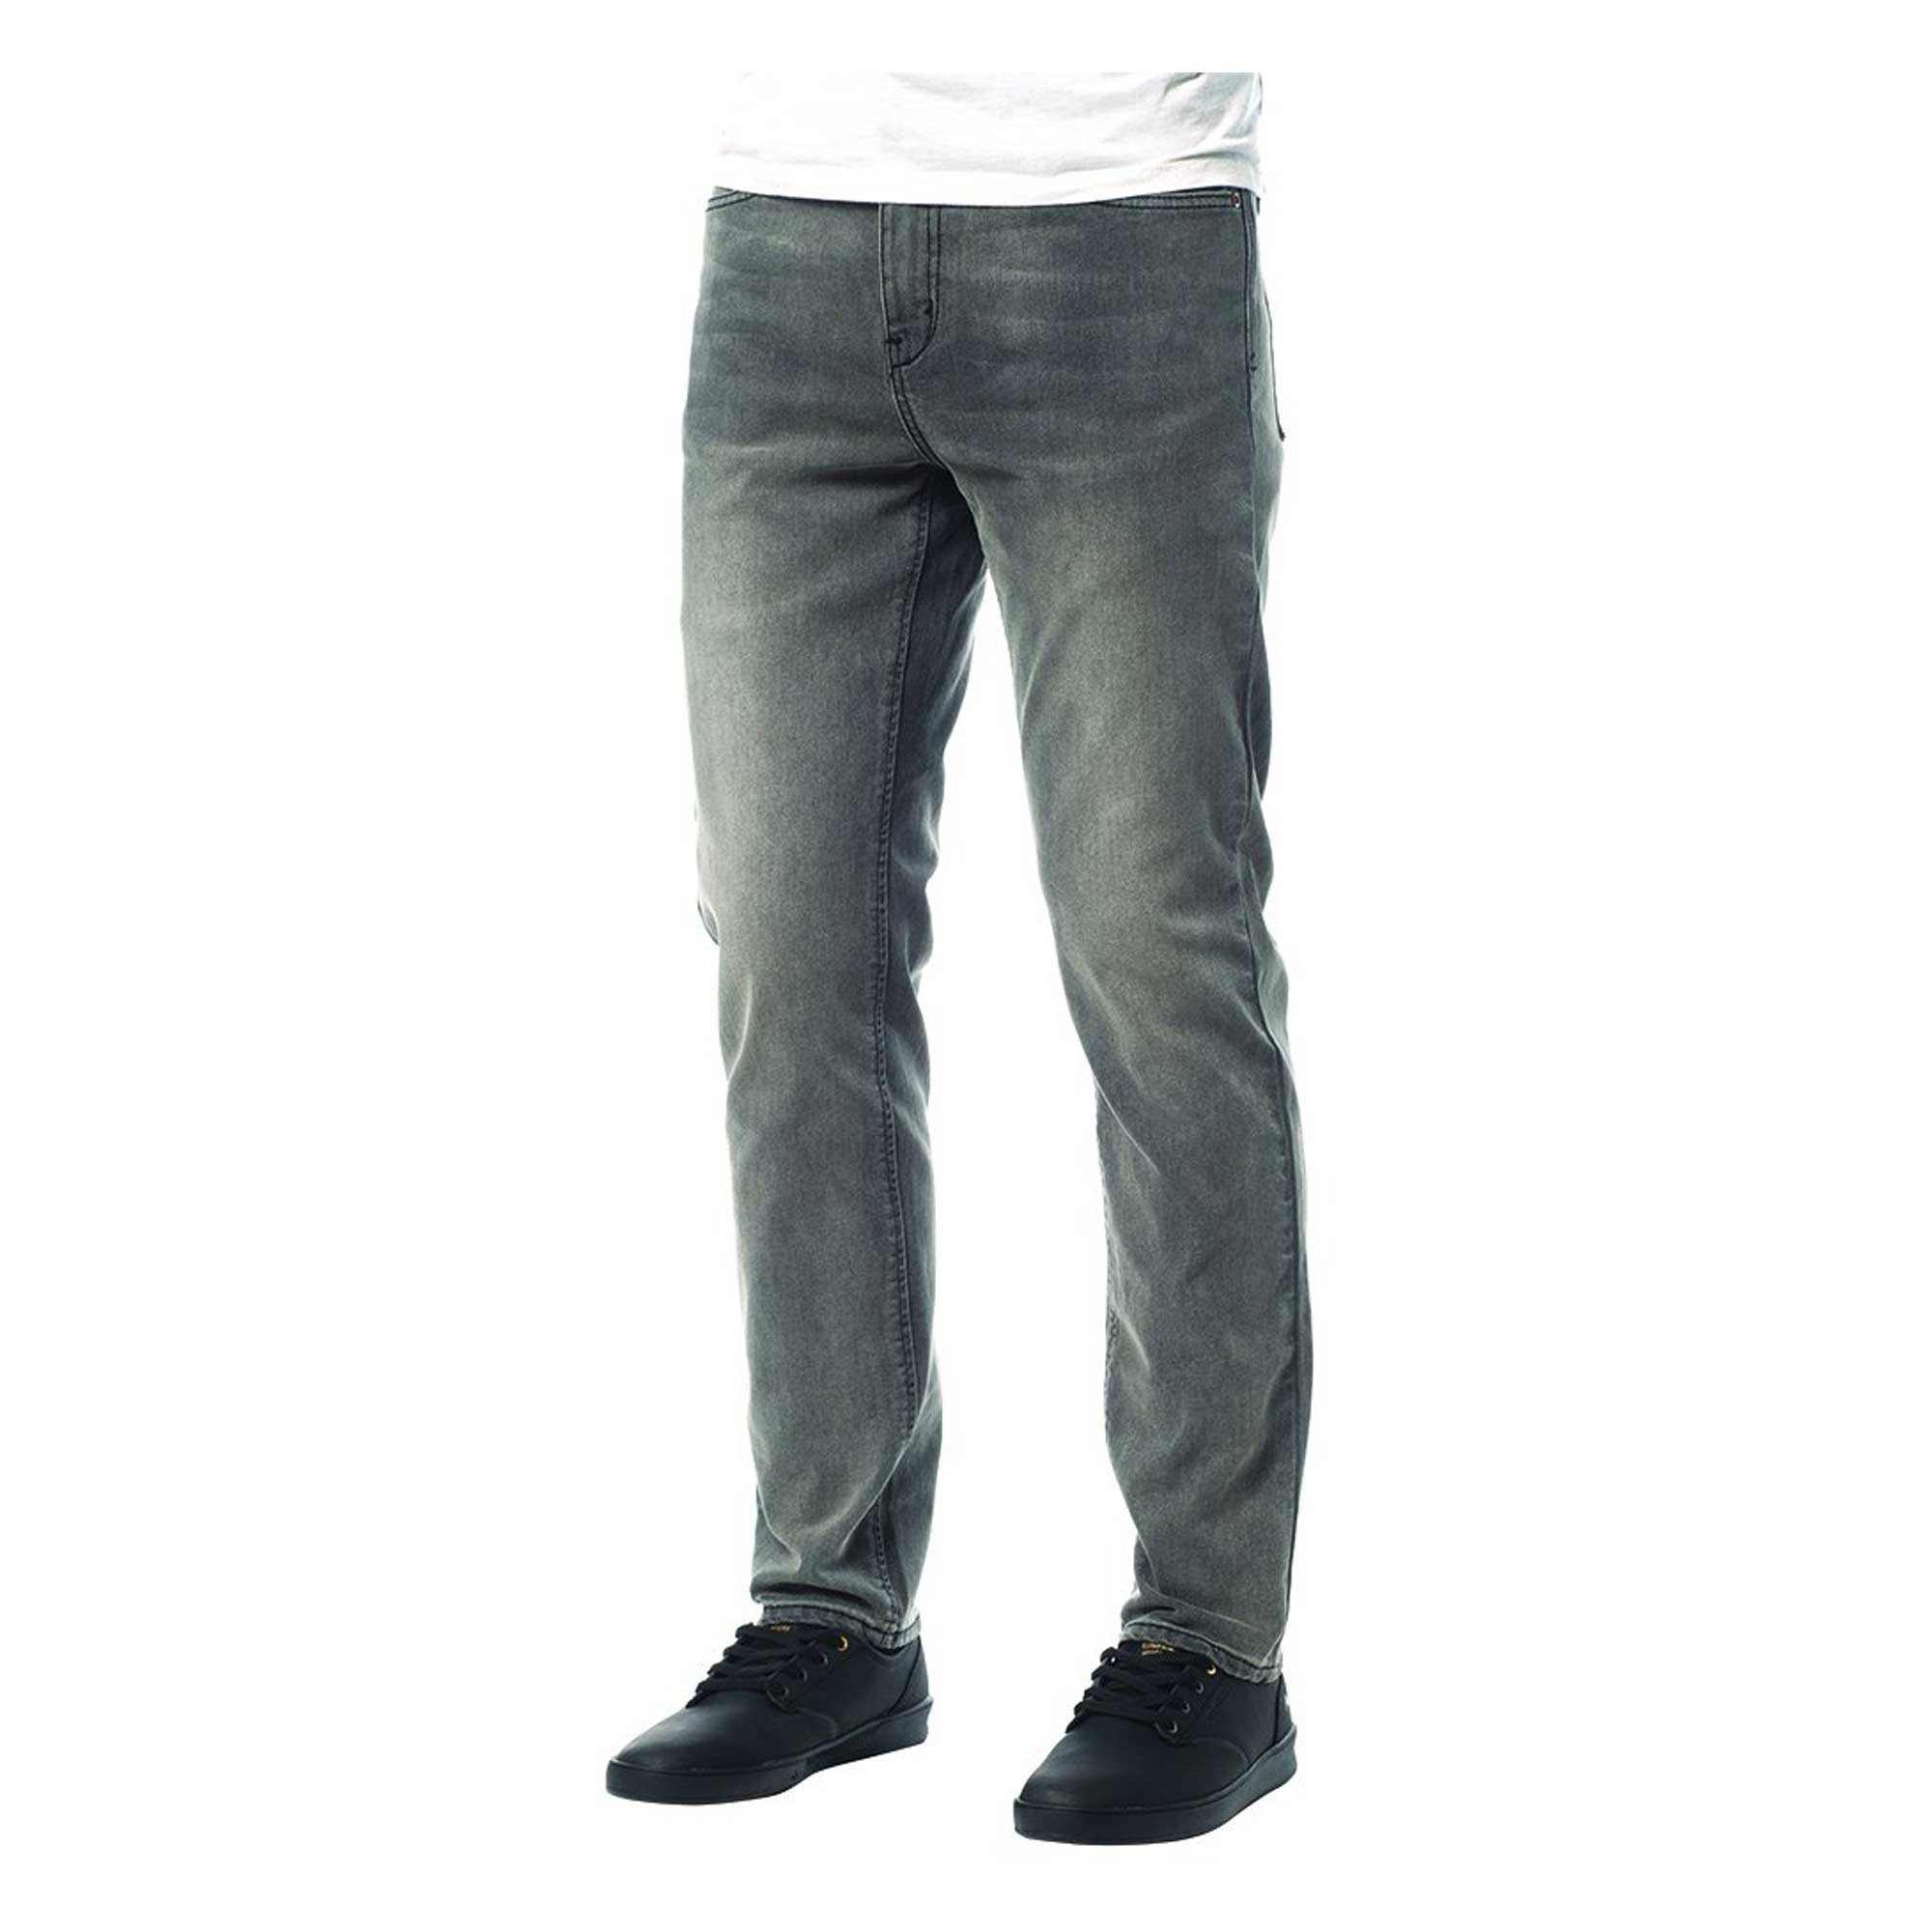 ALTAMONT Pant A/979 DENIM sewer water